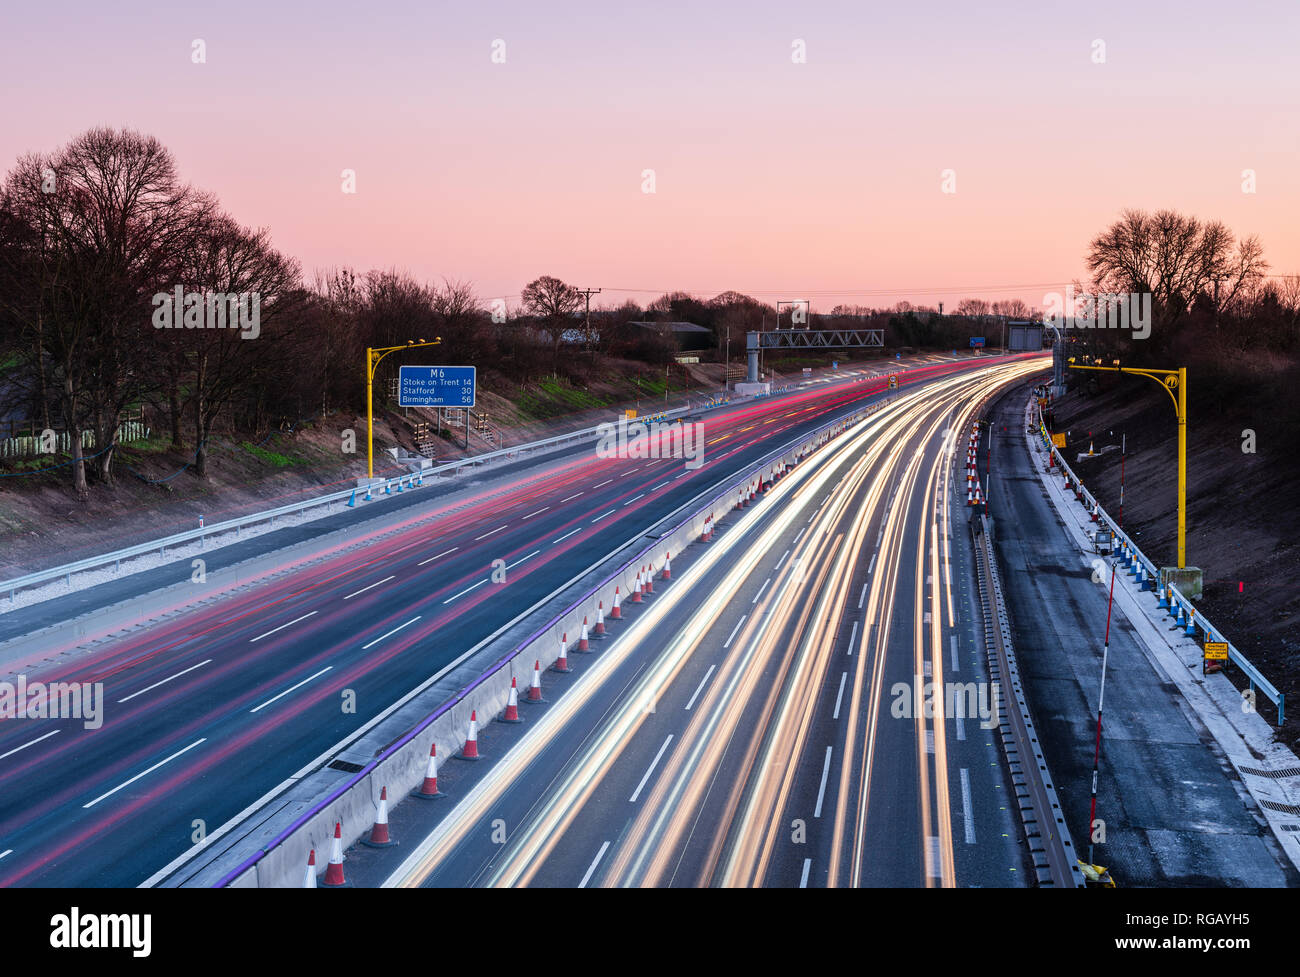 Light trails on the M6 motorway at Sandbach in Cheshire at dusk - Stock Image